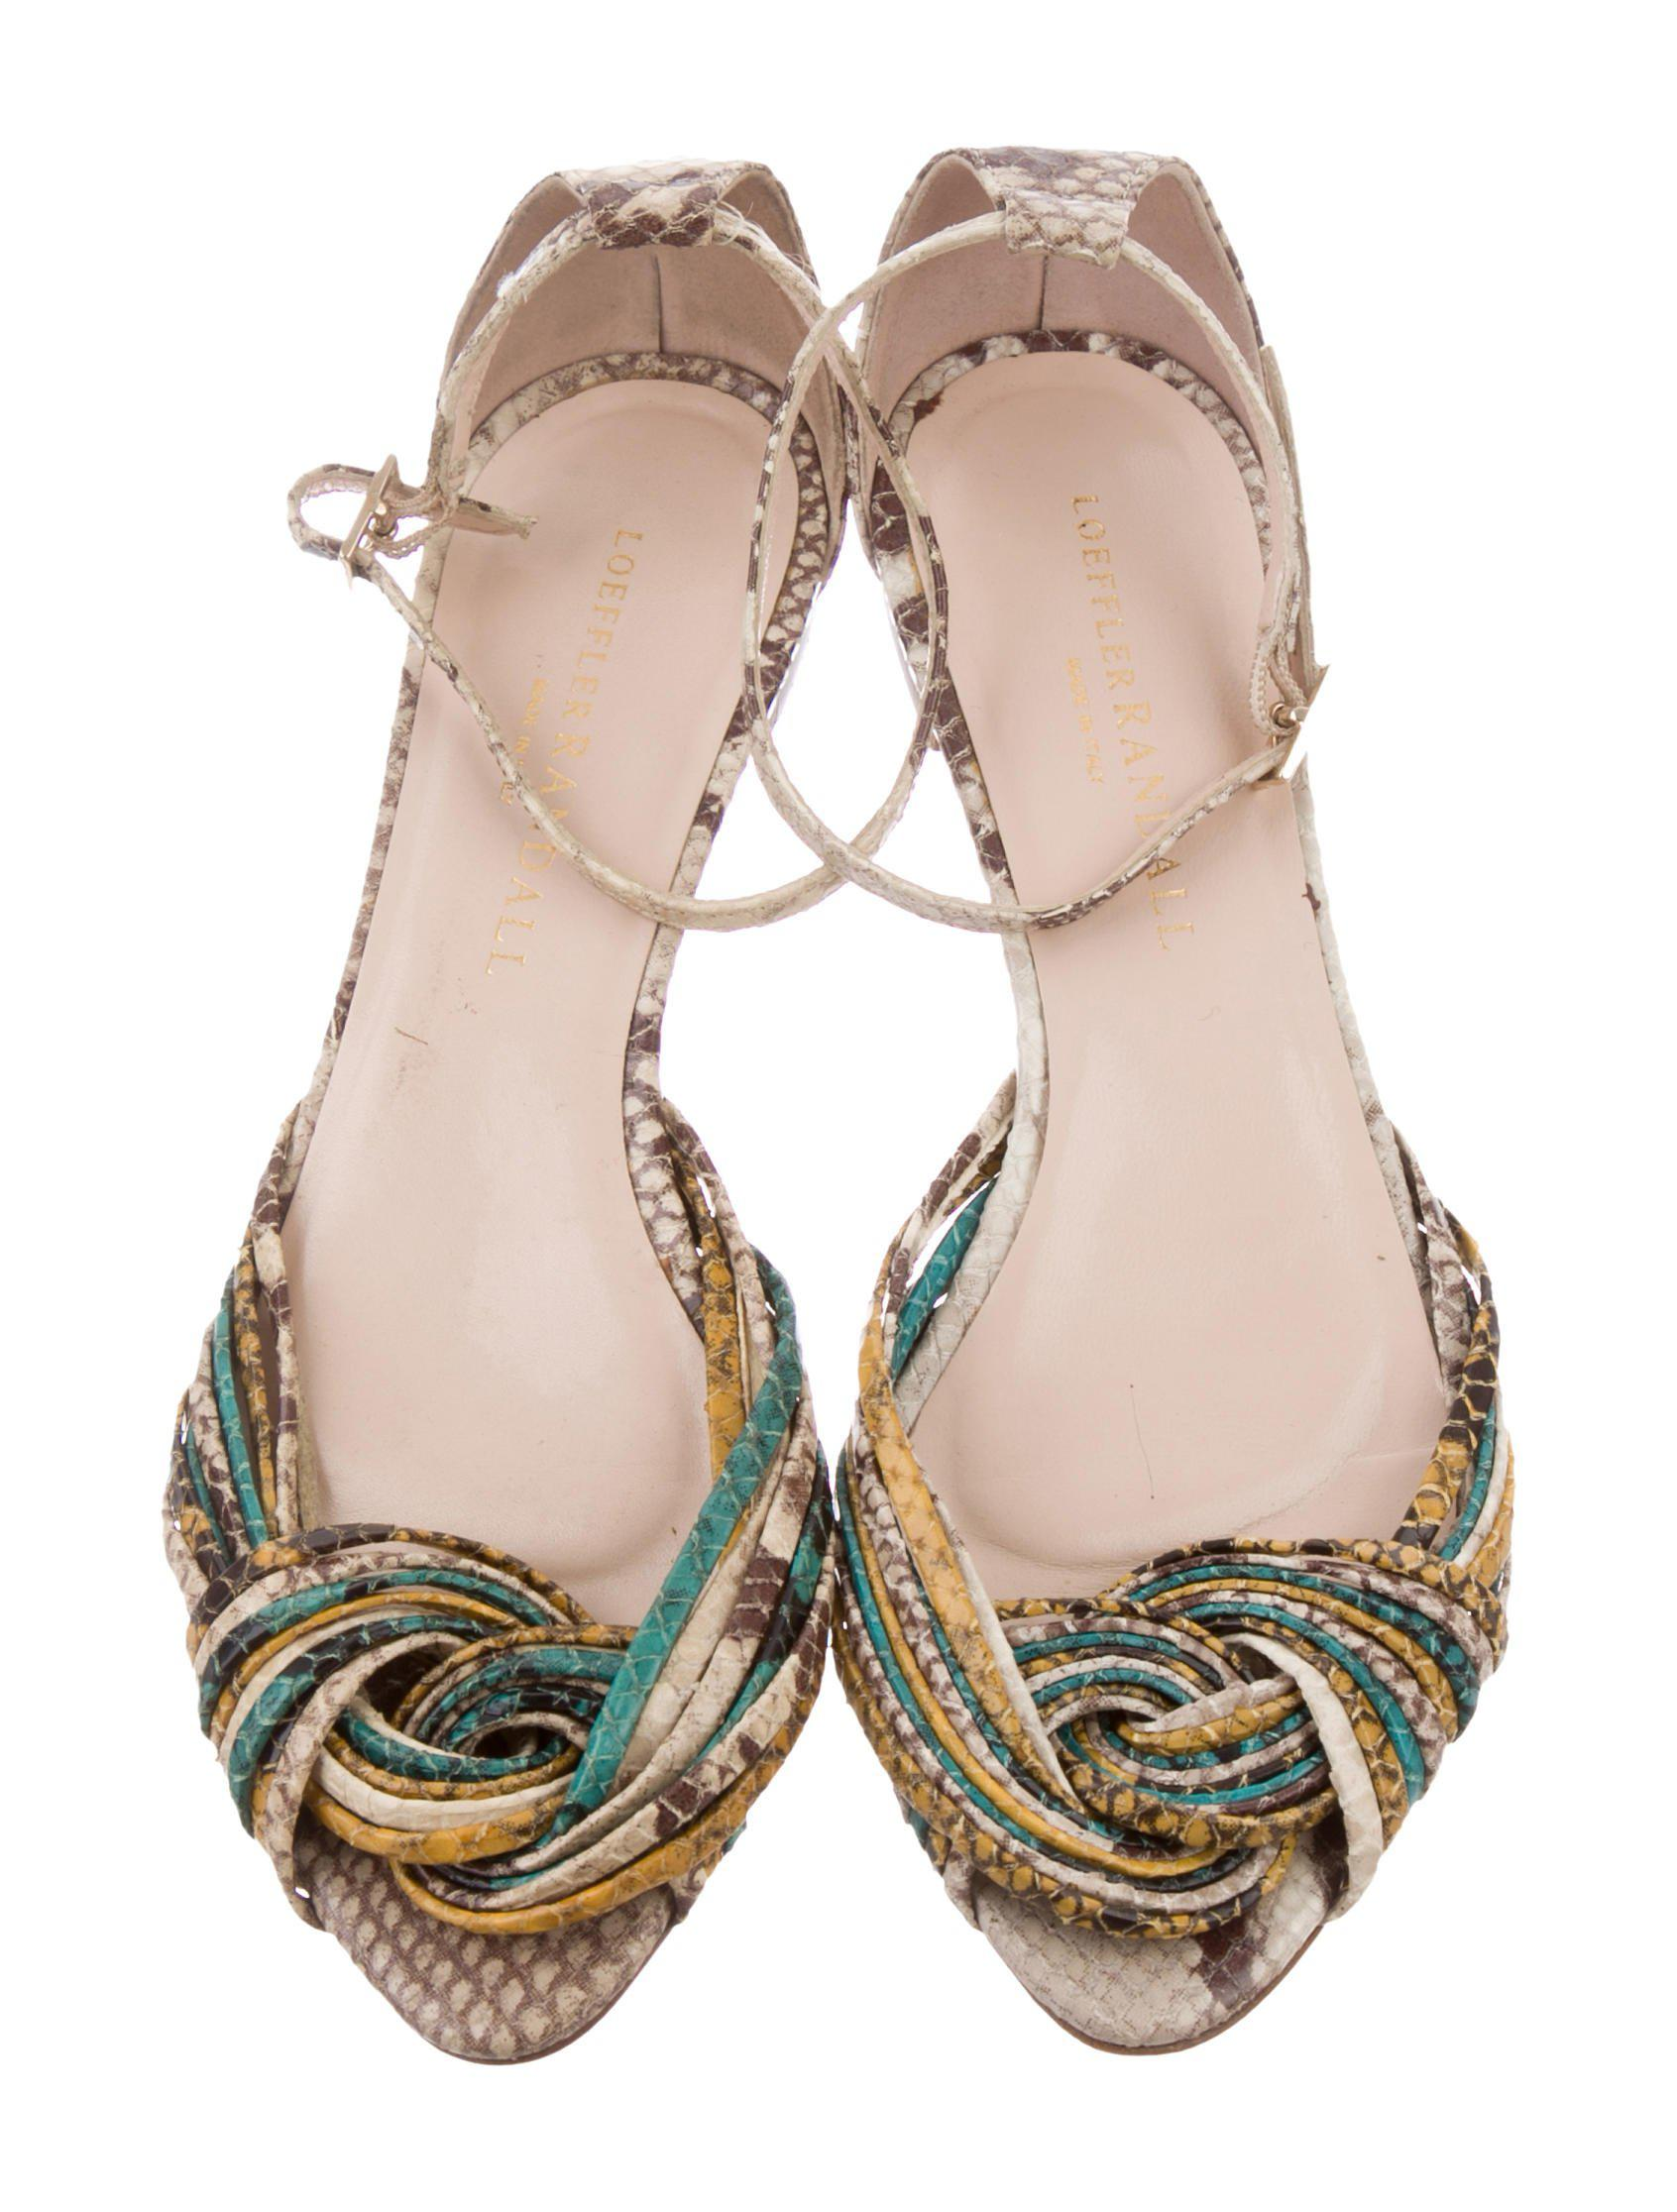 cheap sale for nice cheap high quality Loeffler Randall Twist-Accented Snakeskin Sandals buy cheap high quality clearance new styles low price cheap price JRFxeeJyc